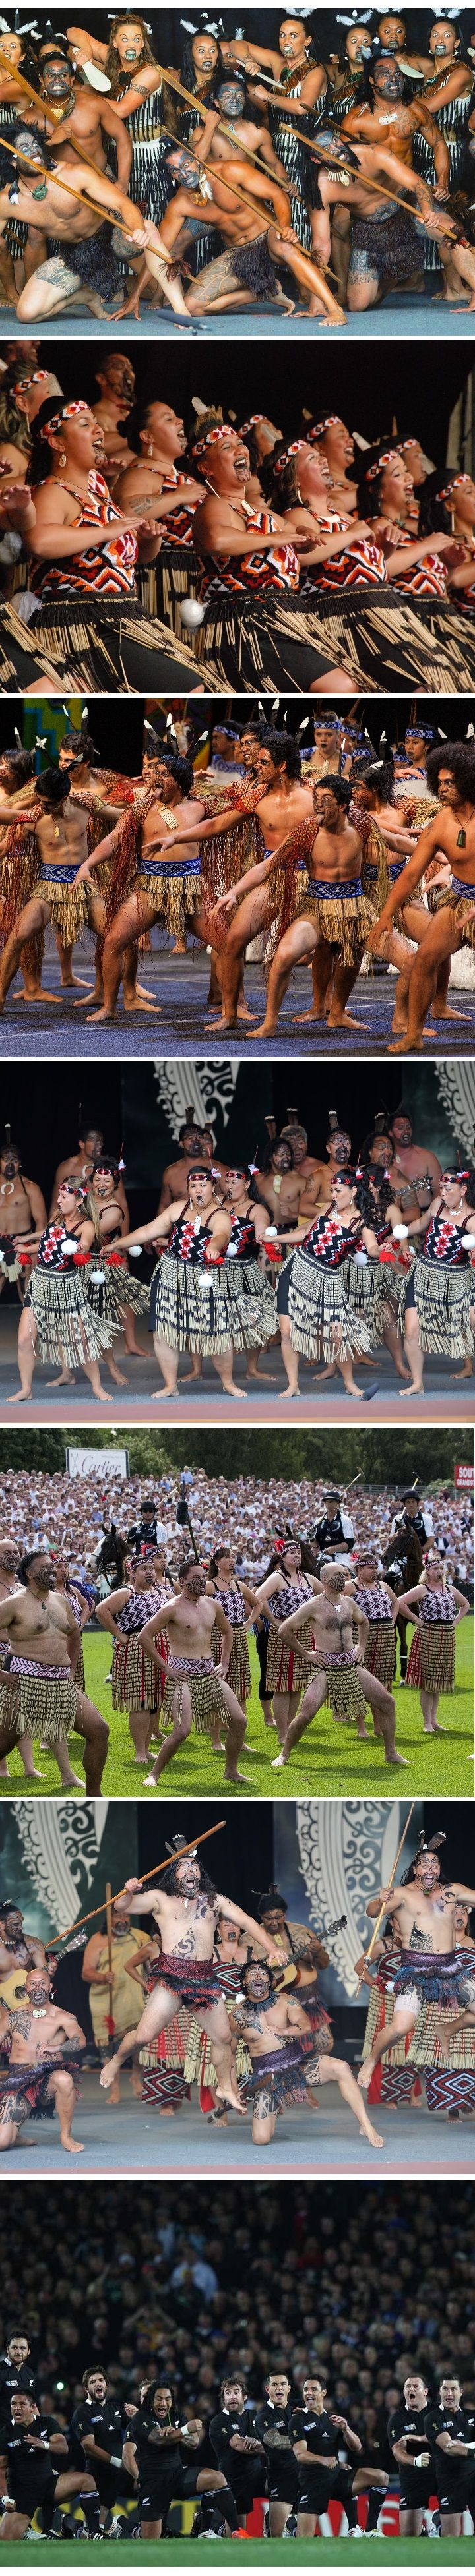 The Haka - Maori - Aotearoa - Warrior dance from New Zealand  I WANNA GO BACK!!